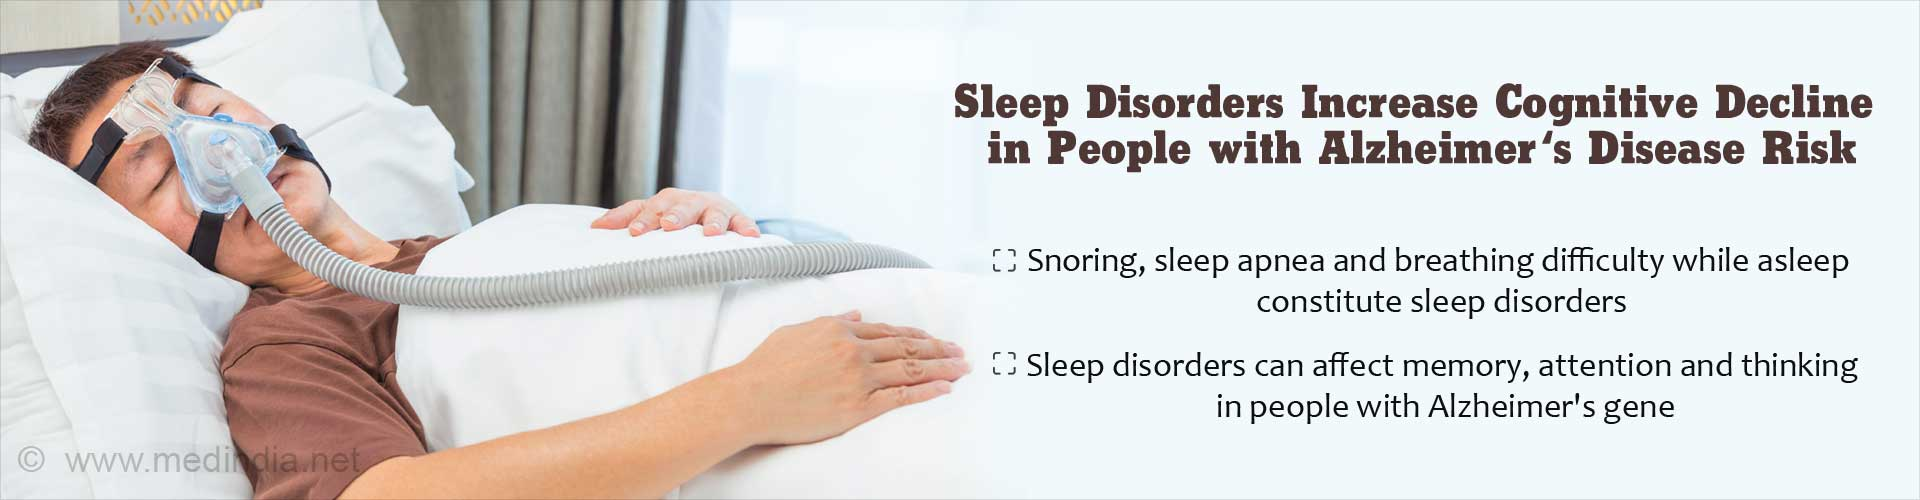 Sleep Disorders Increase Cognitive Decline in People with Alzheimer's Disease Risk - Snoring, sleep apnea and breathing difficulty while asleep constitute sleep disorders - Sleep disorders can affect memory, attention and thinking in people with Alzheimer's gene